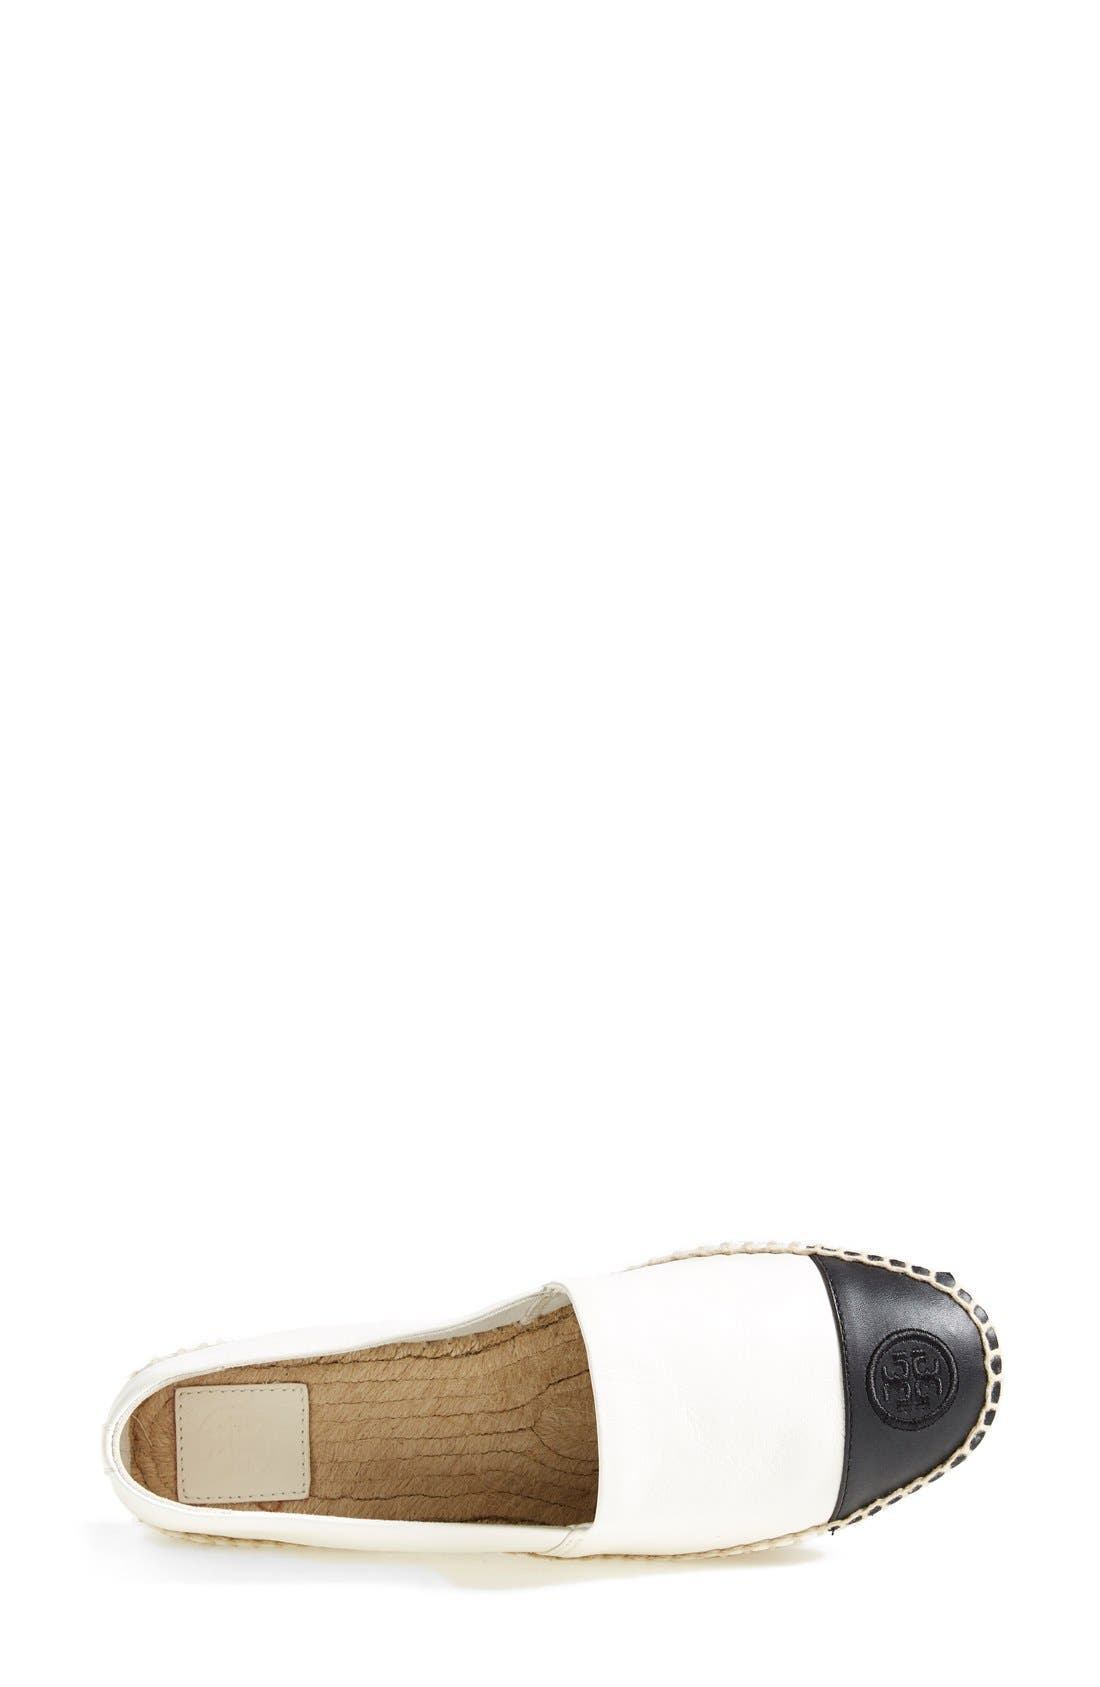 TORY BURCH, Colorblock Espadrille Flat, Alternate thumbnail 2, color, IVORY/ BLACK